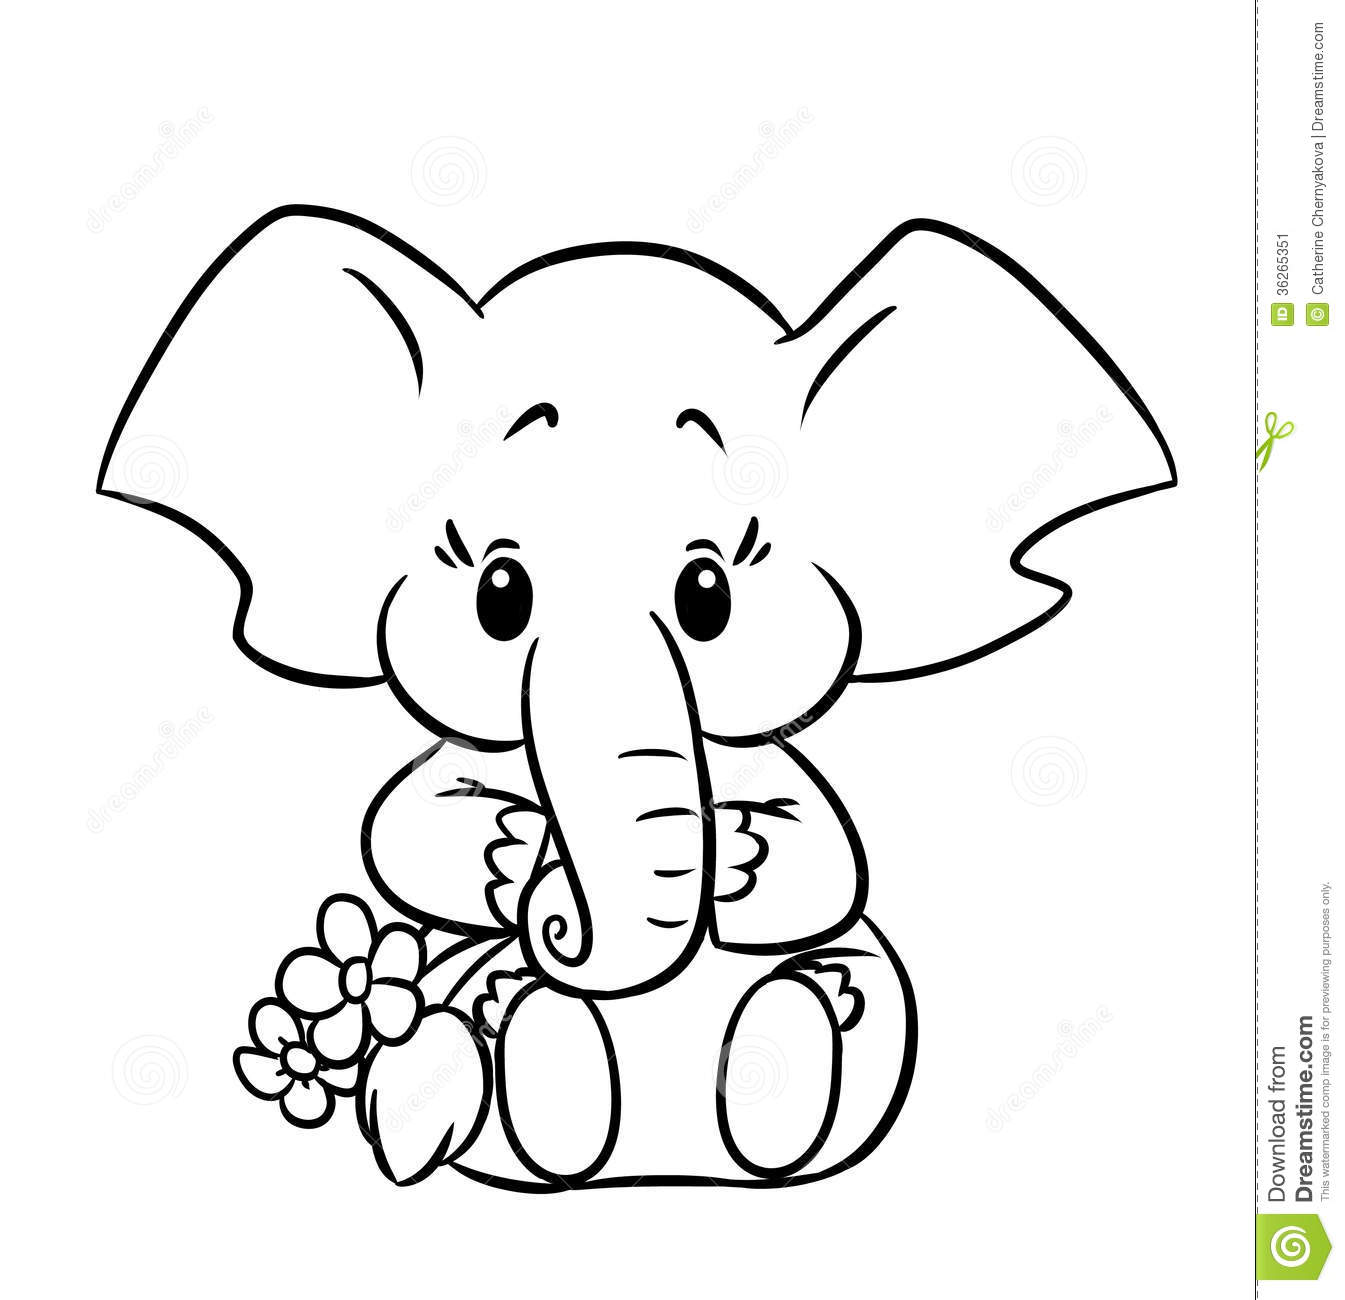 free printable elephant coloring pages free printable elephant coloring pages for kids free printable pages coloring elephant